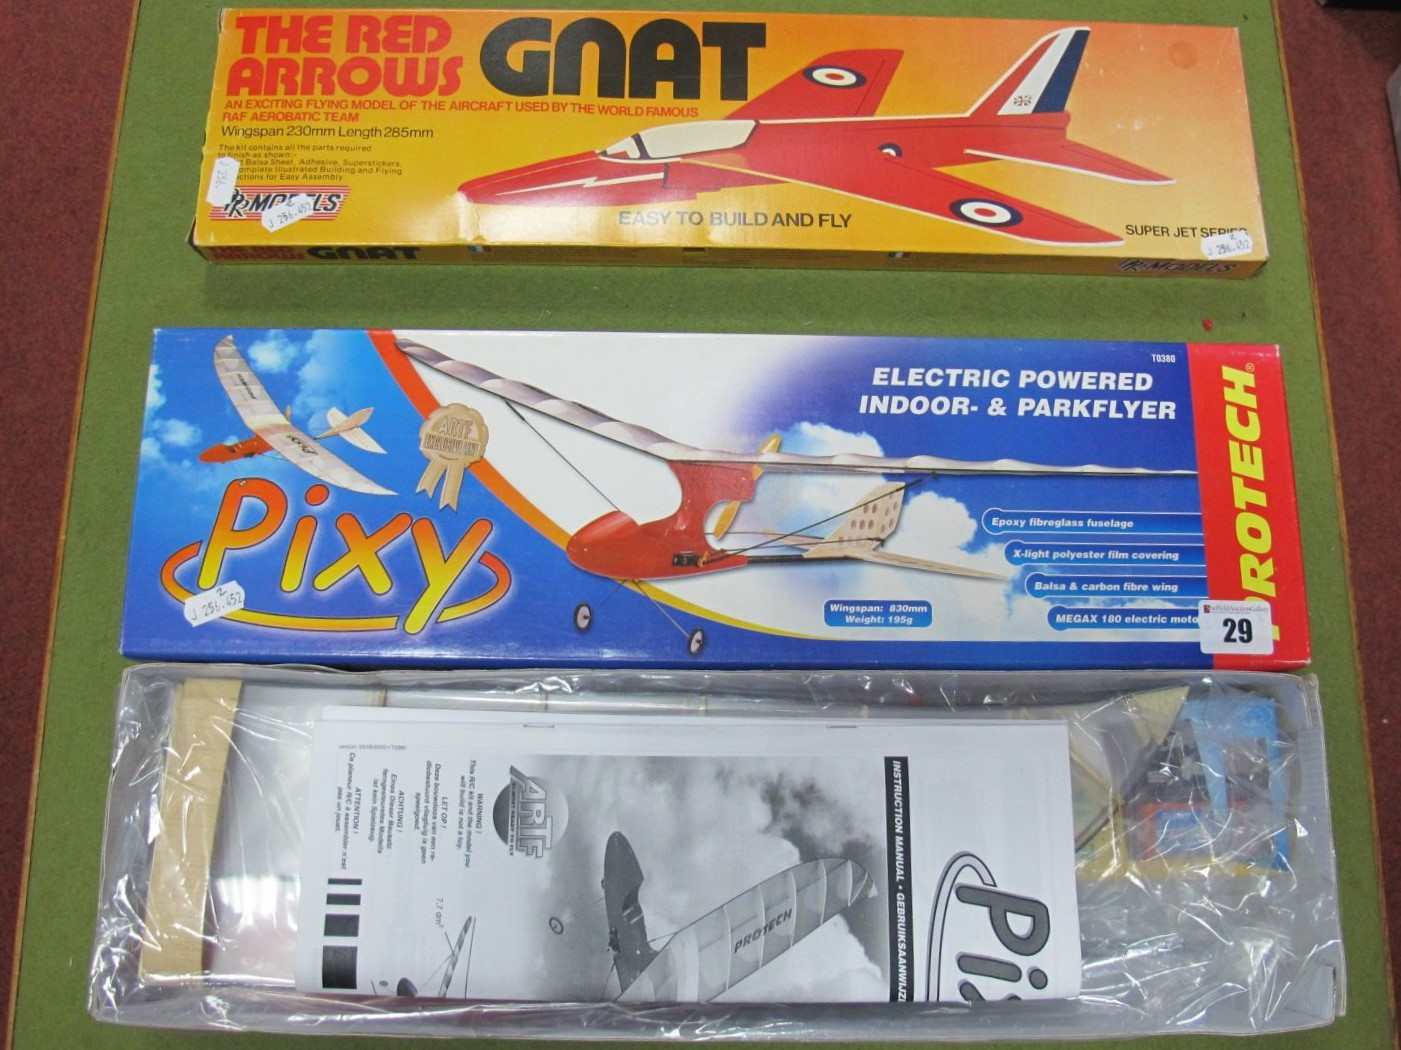 Lot 29 - A Boxed Protech #T0380 'Pixy' Electric Powered Indoor and Park Flyer Model Aircraft, comes